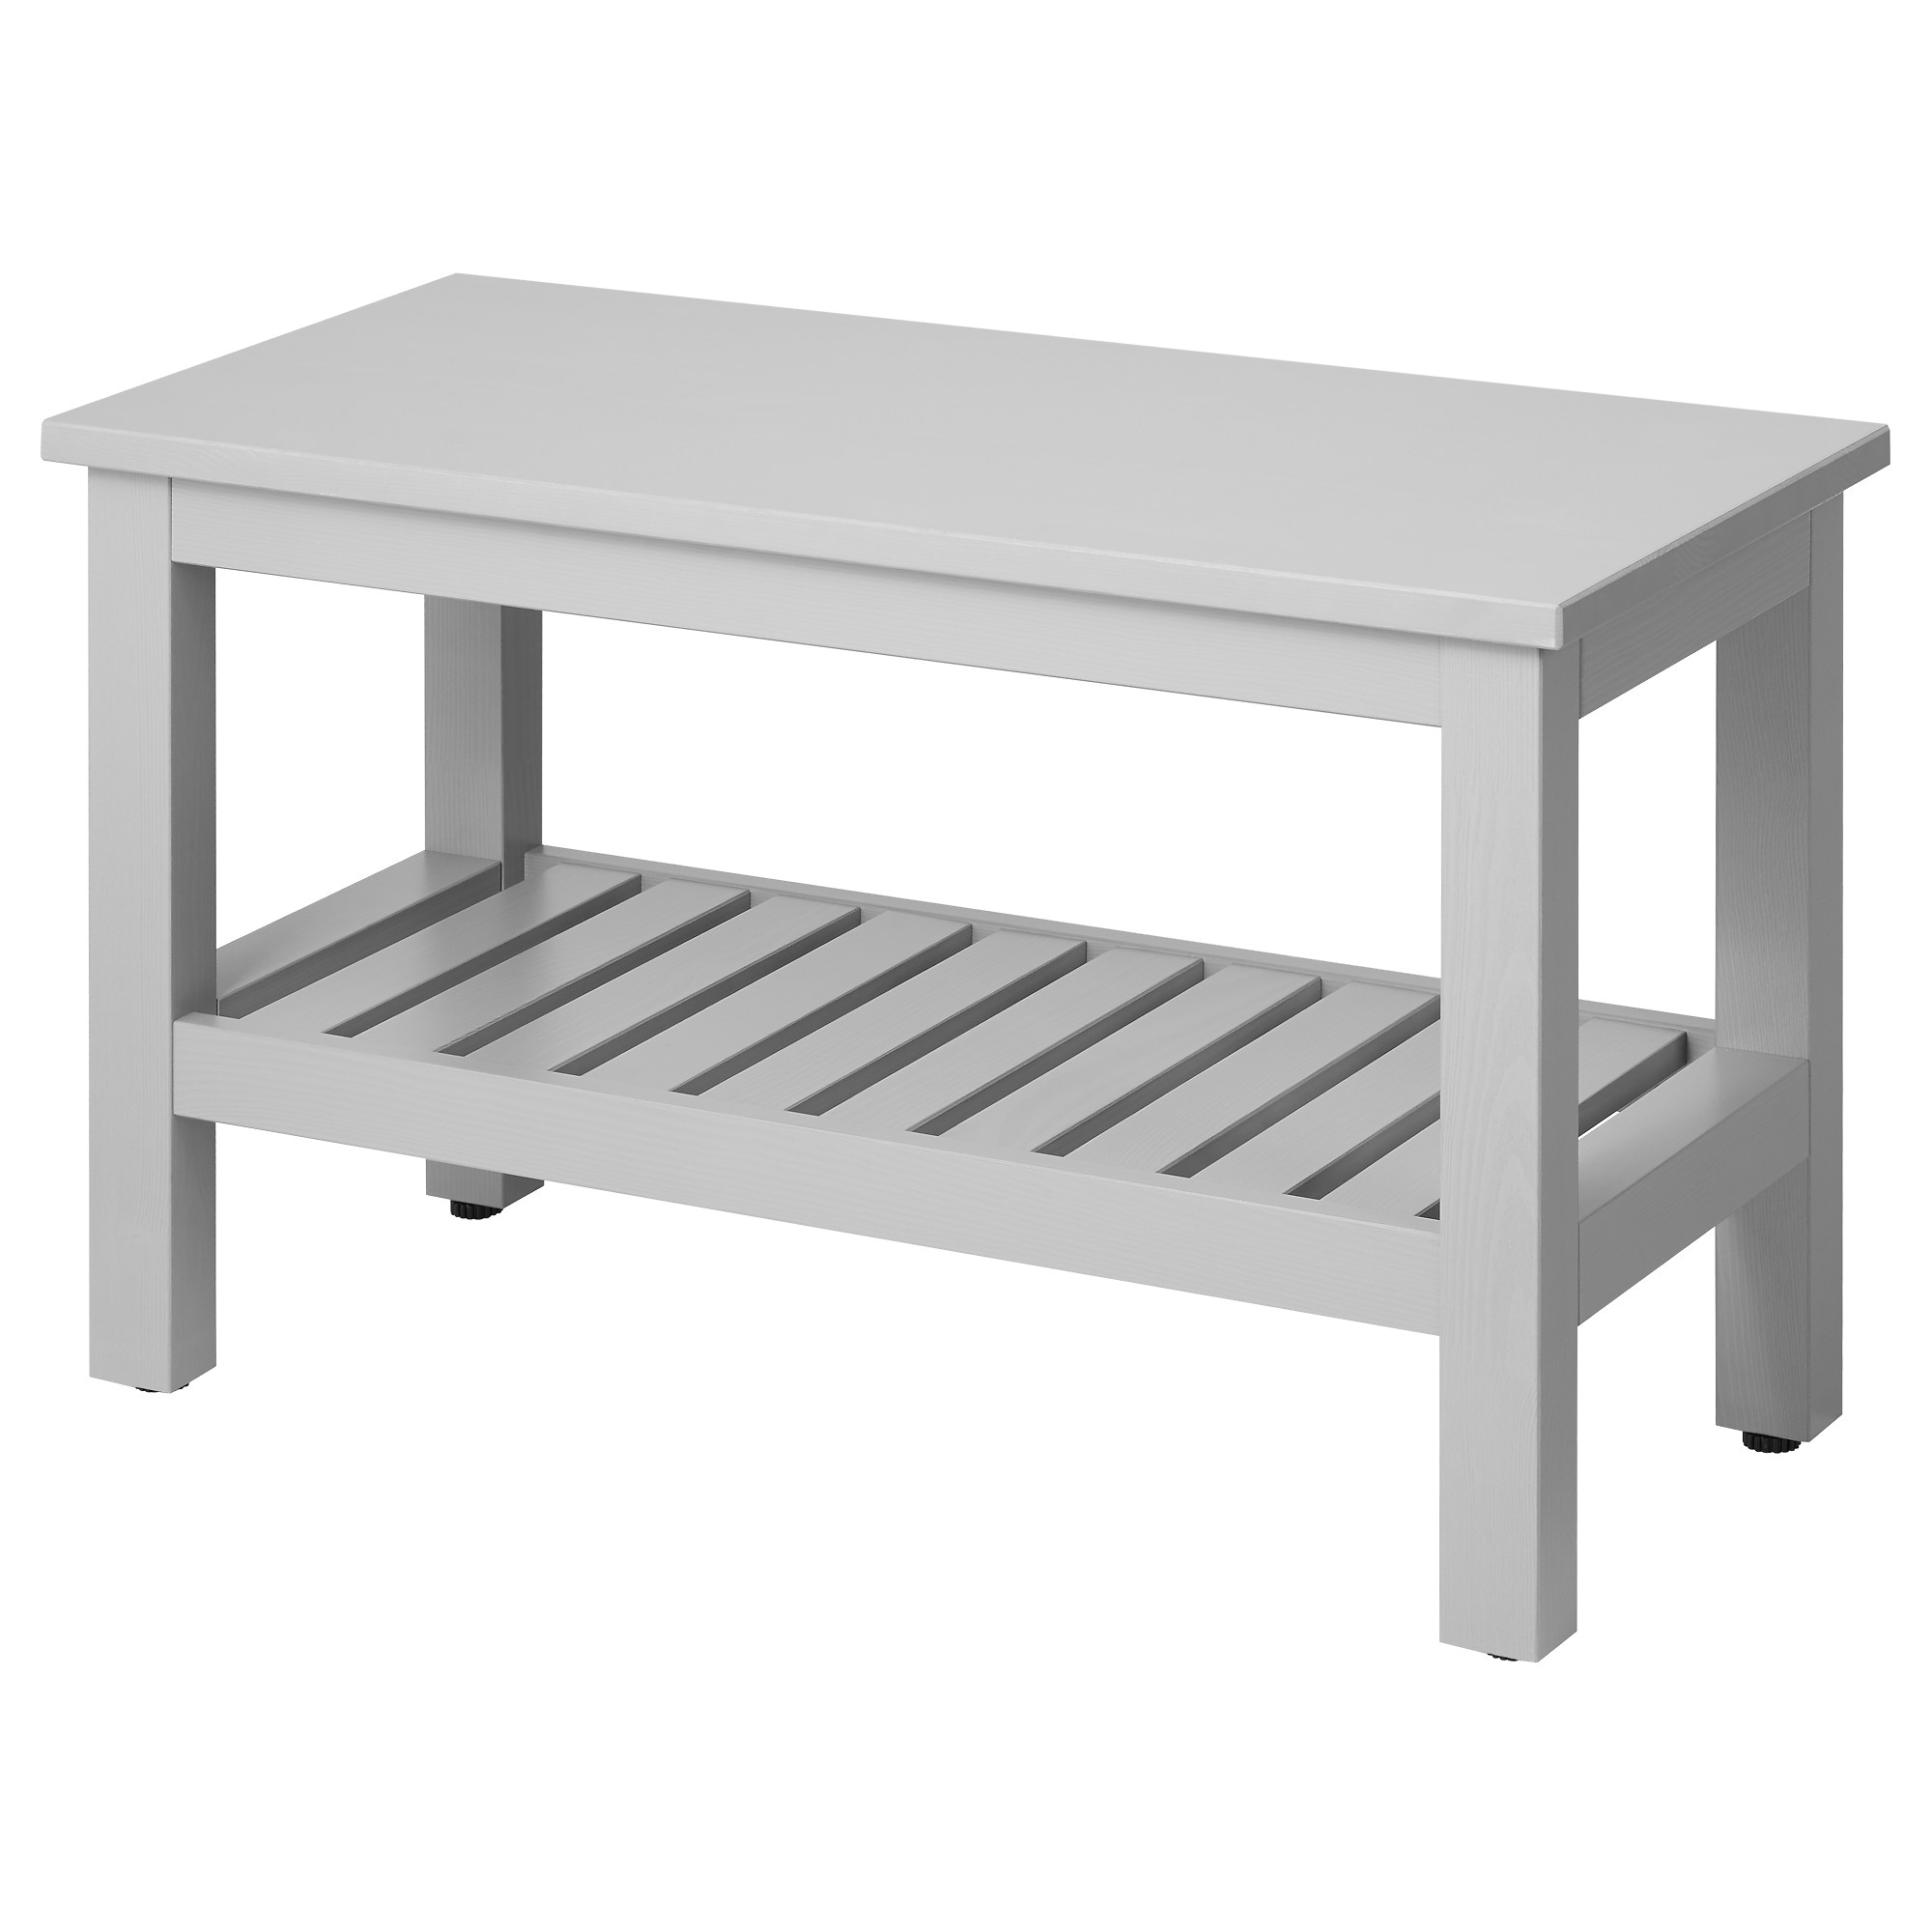 Unique Hemnes Ikea Coffee Table